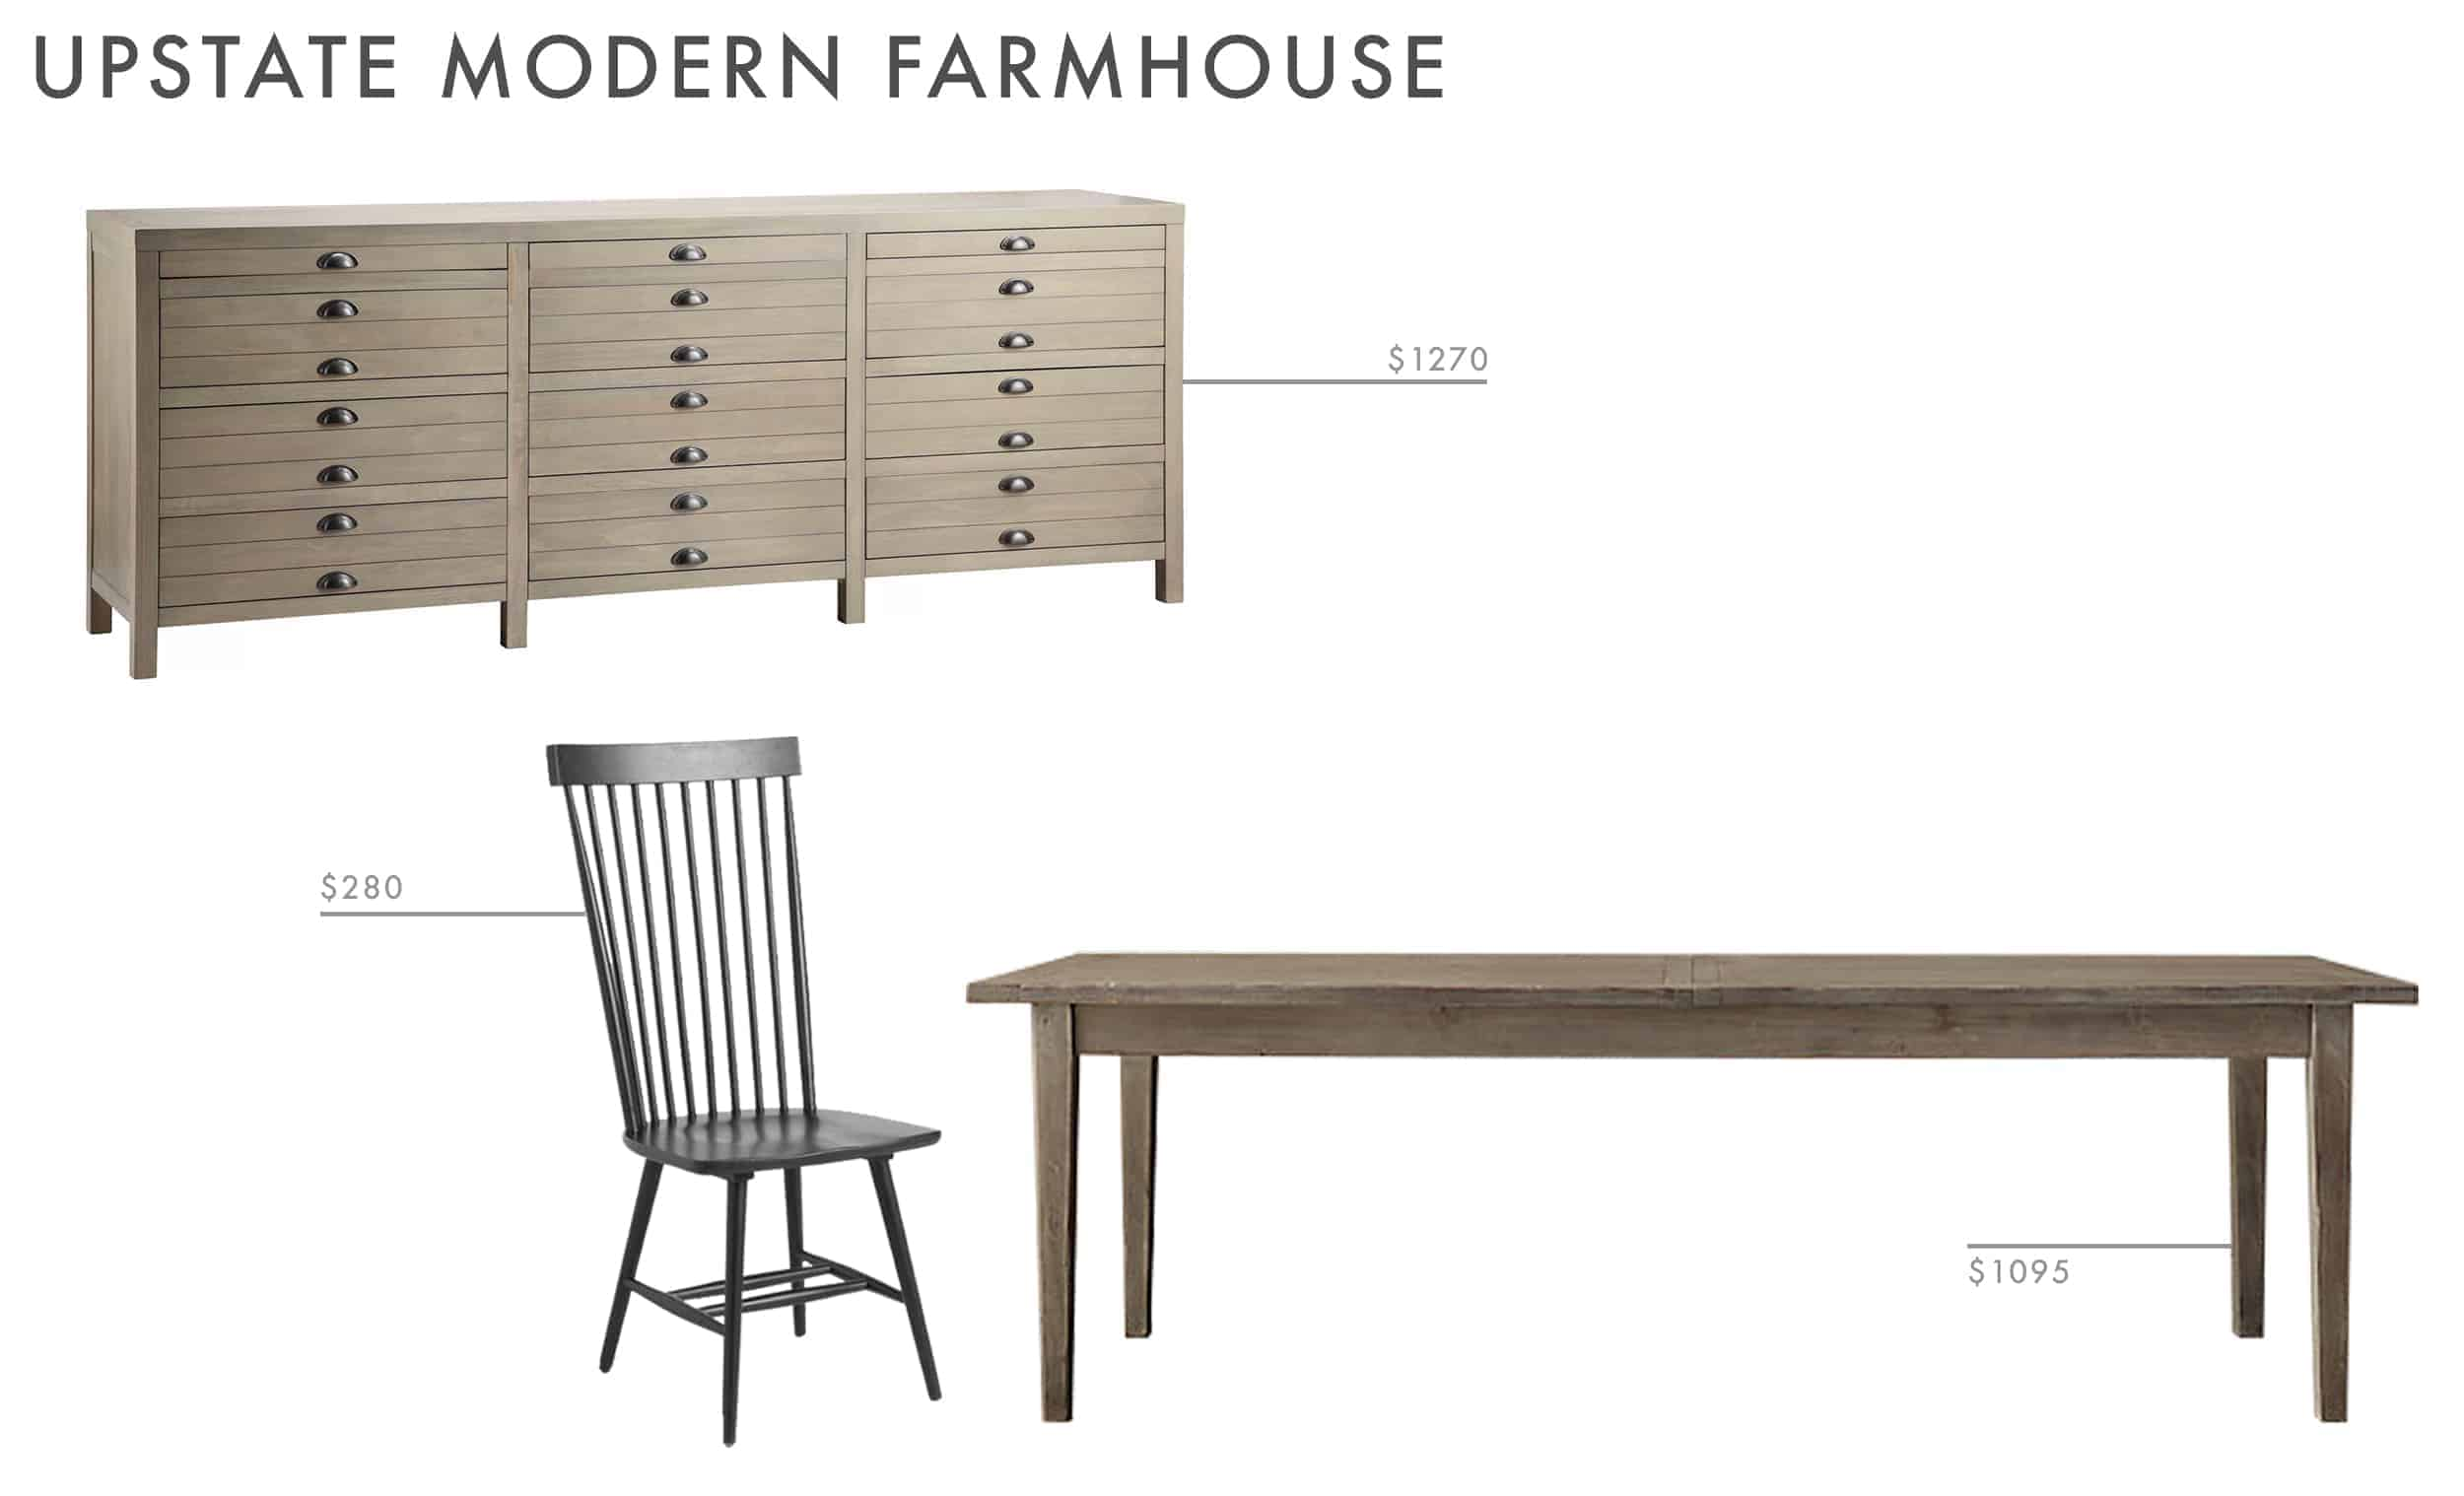 dining room ideas refined farmhouse black spindle chair wood credenza wood table